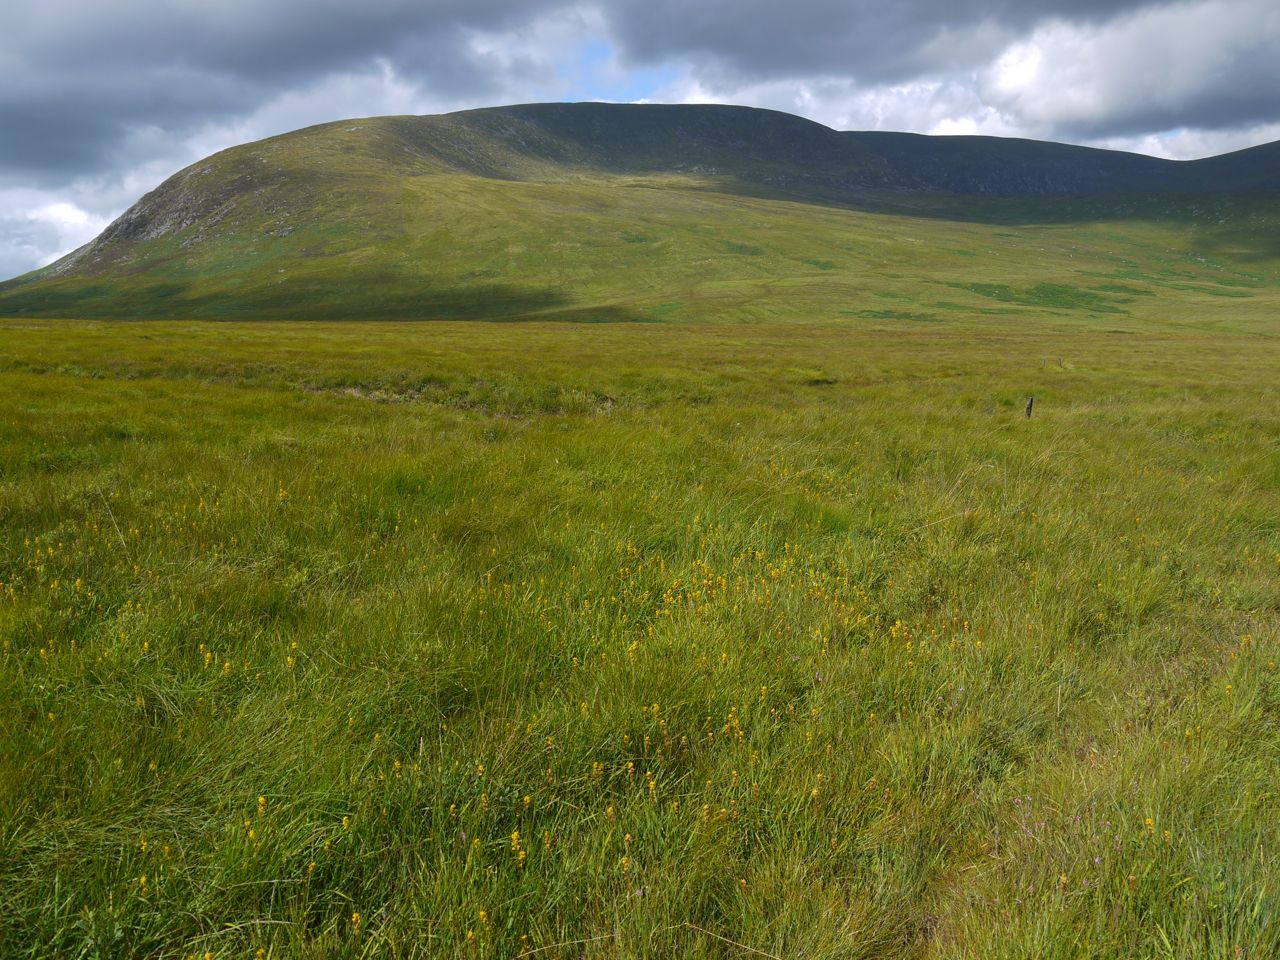 Knee of Cairnsmore, Cardoon Burn in mid-distance, Bog Asphodel in the foreground